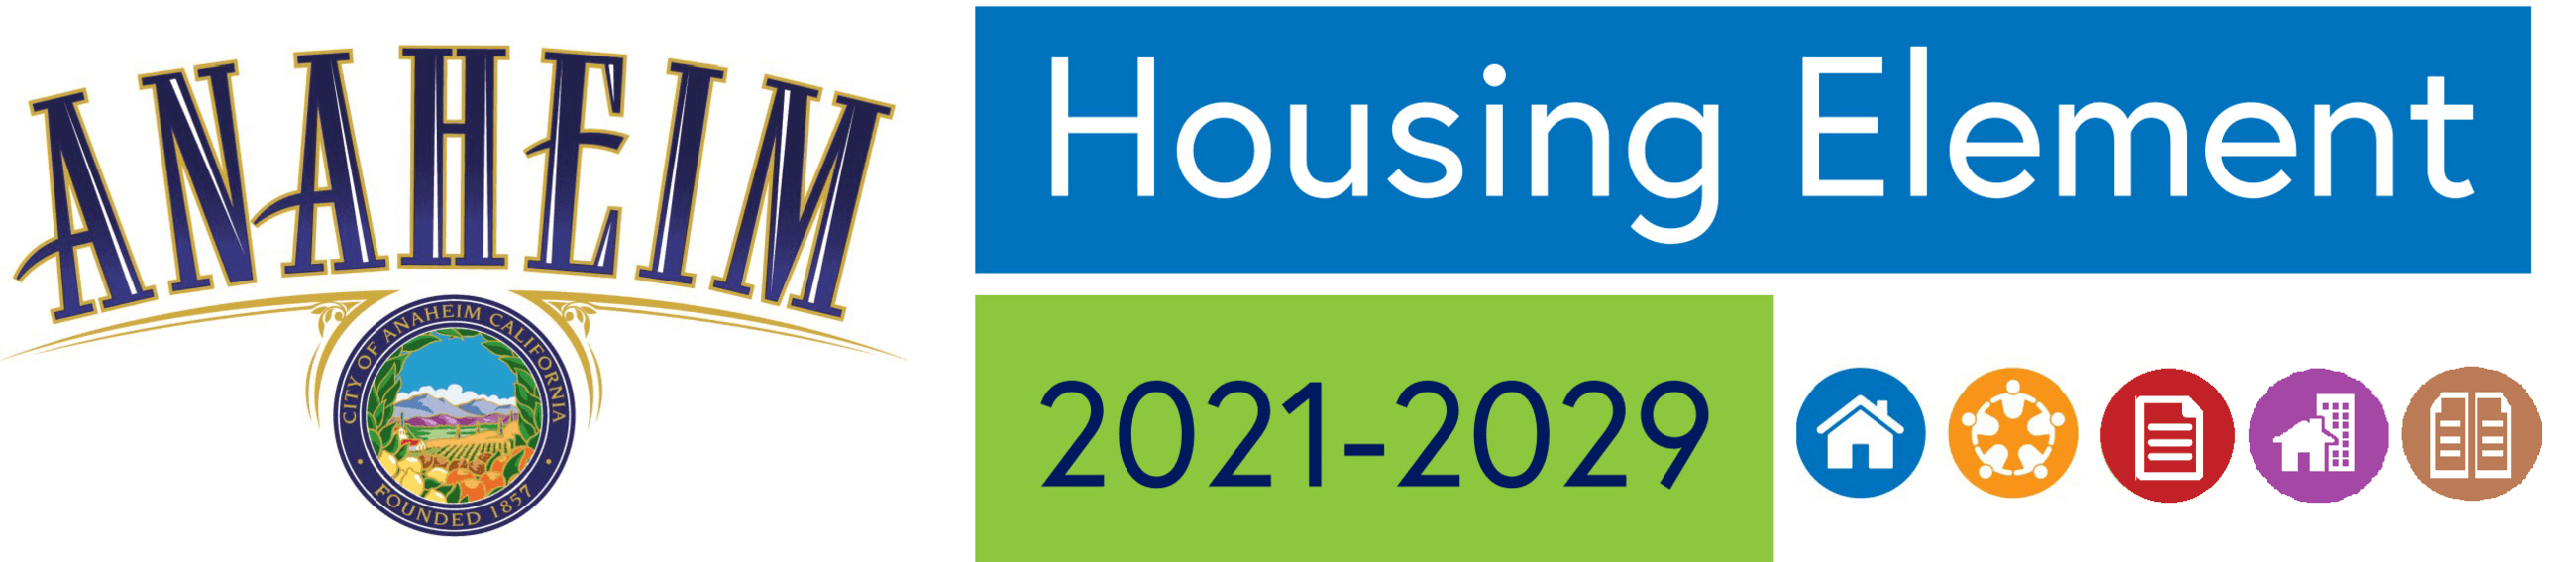 Housing element logo 2-15-21 png Opens in new window